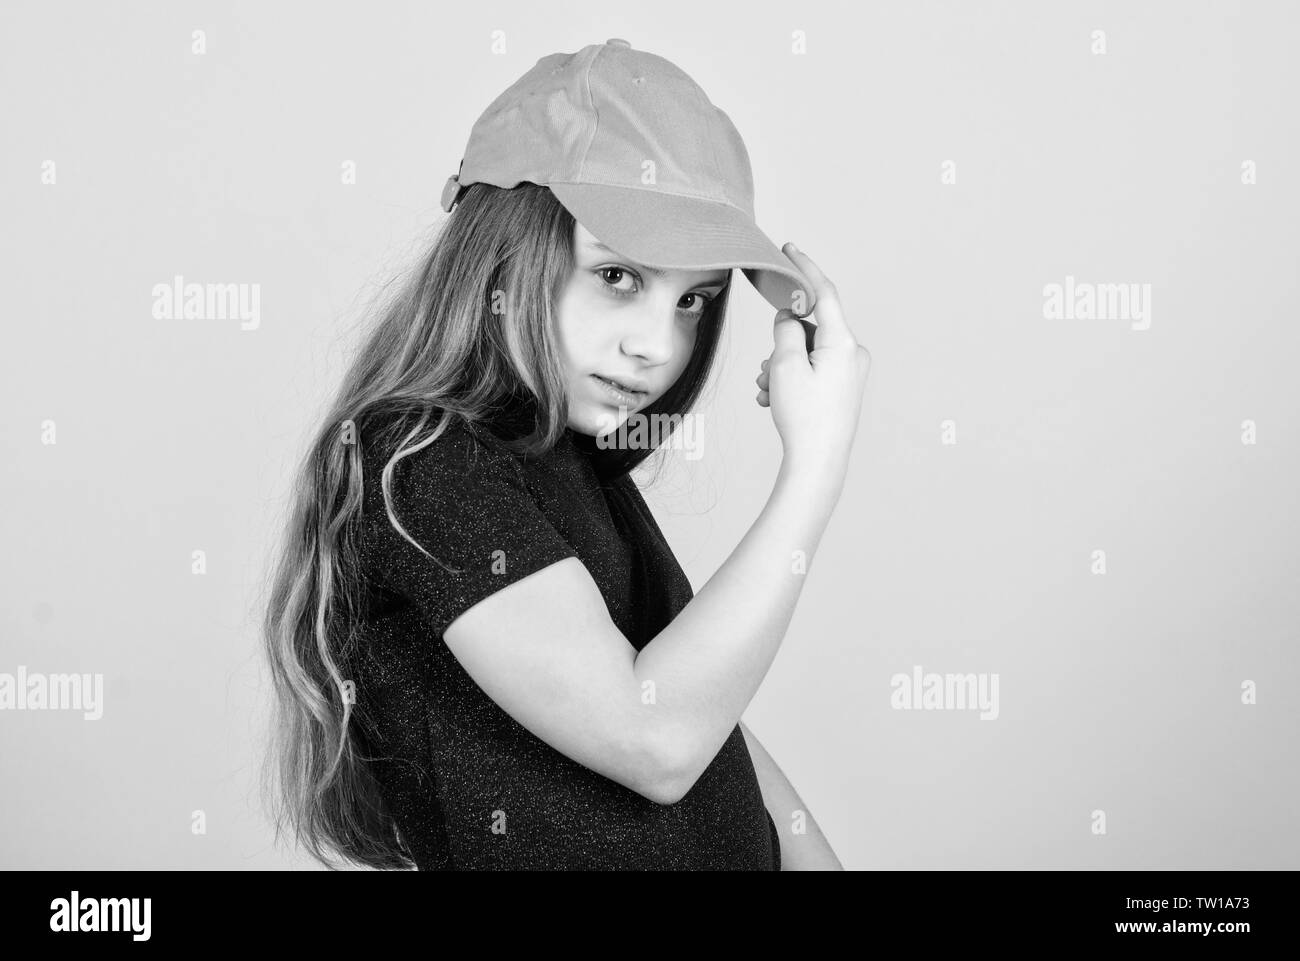 Fashion and beauty. Adorable little girl with adorable fashion look. Small cute fashion model. Fashionable child wearing fashion clothing and accessory, copy space. - Stock Image